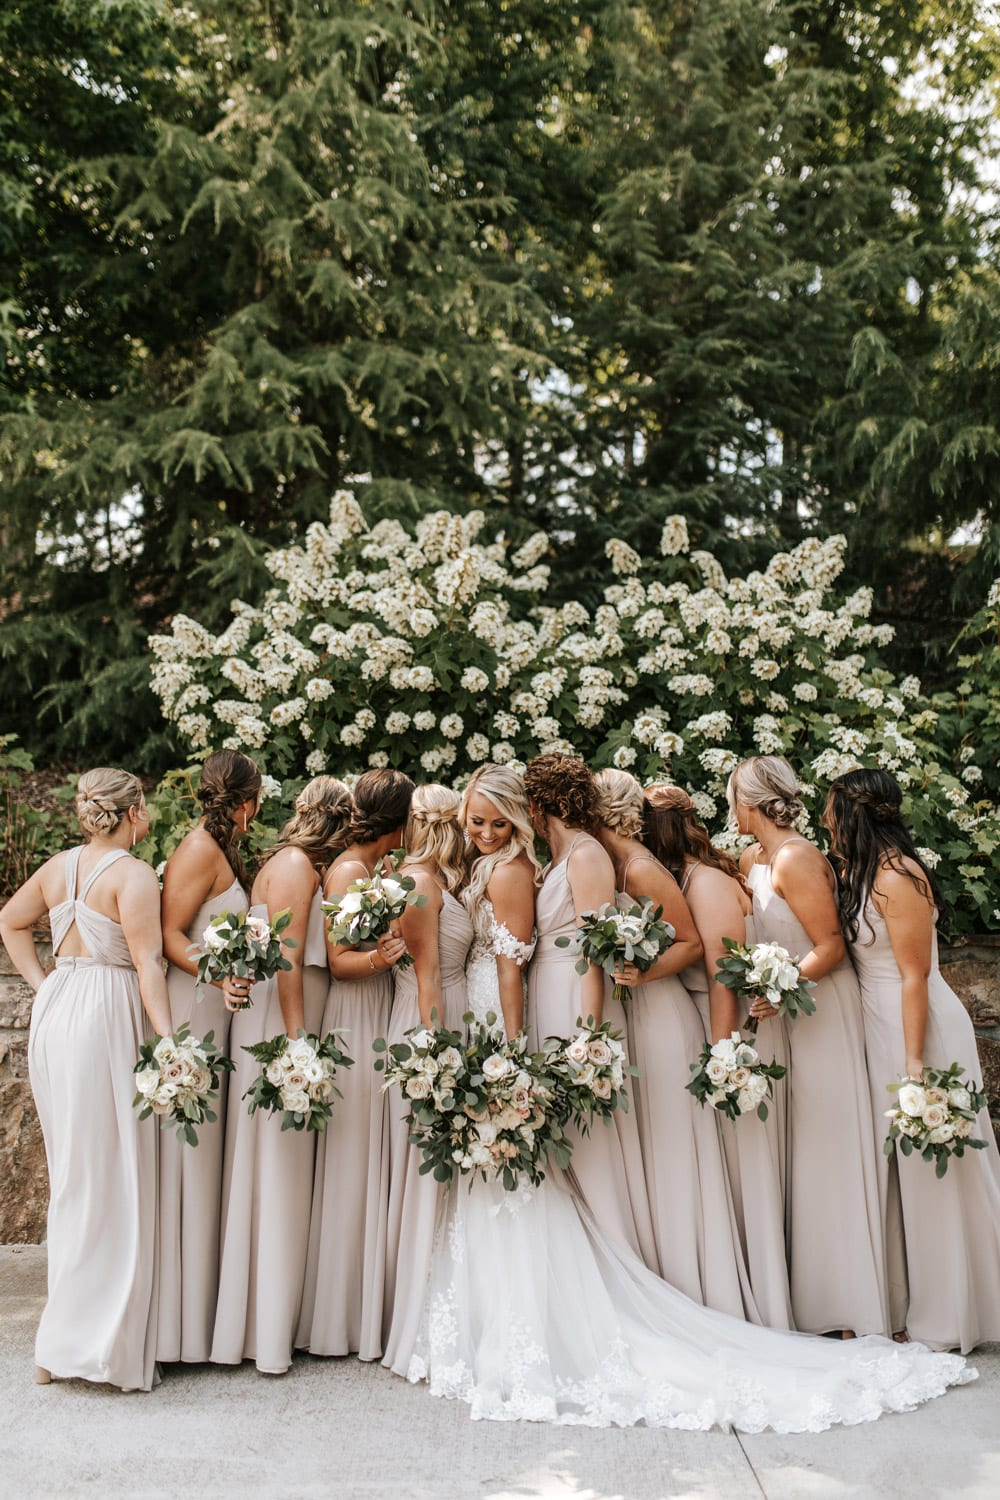 Bride and bridesmaids pose with flowers outside